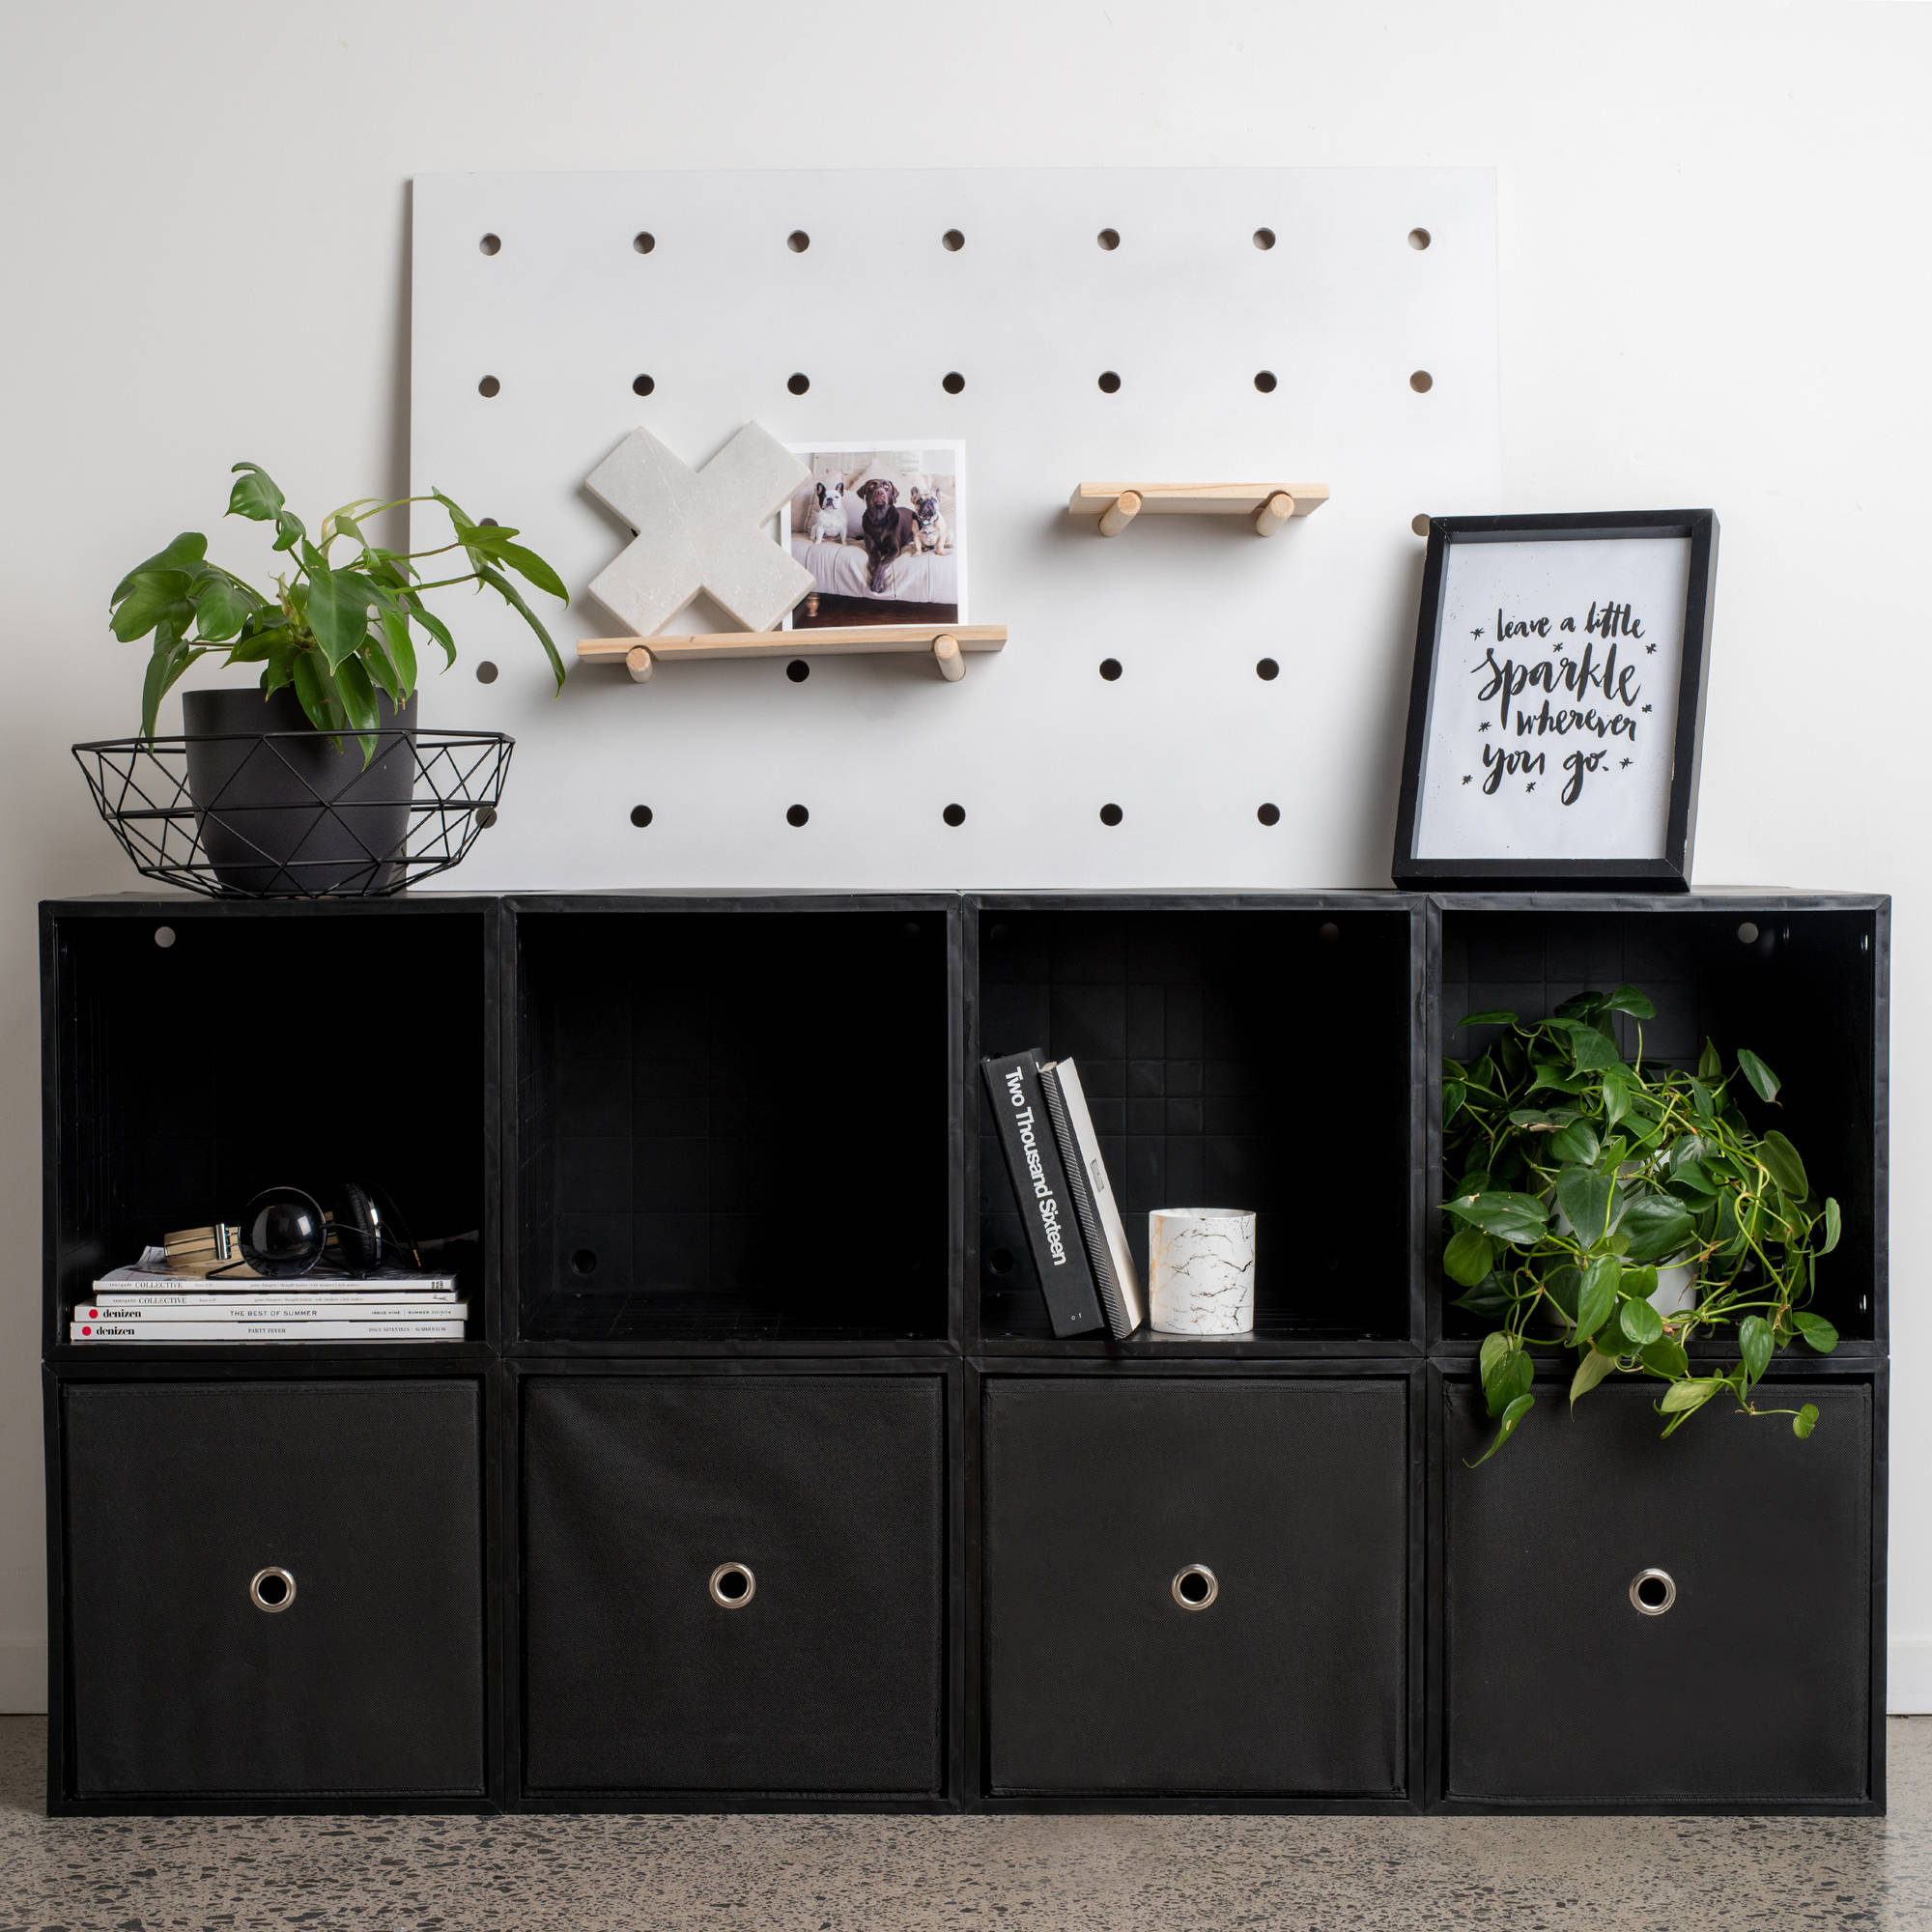 iCube 8-Cube Organizer with Drawers, Black